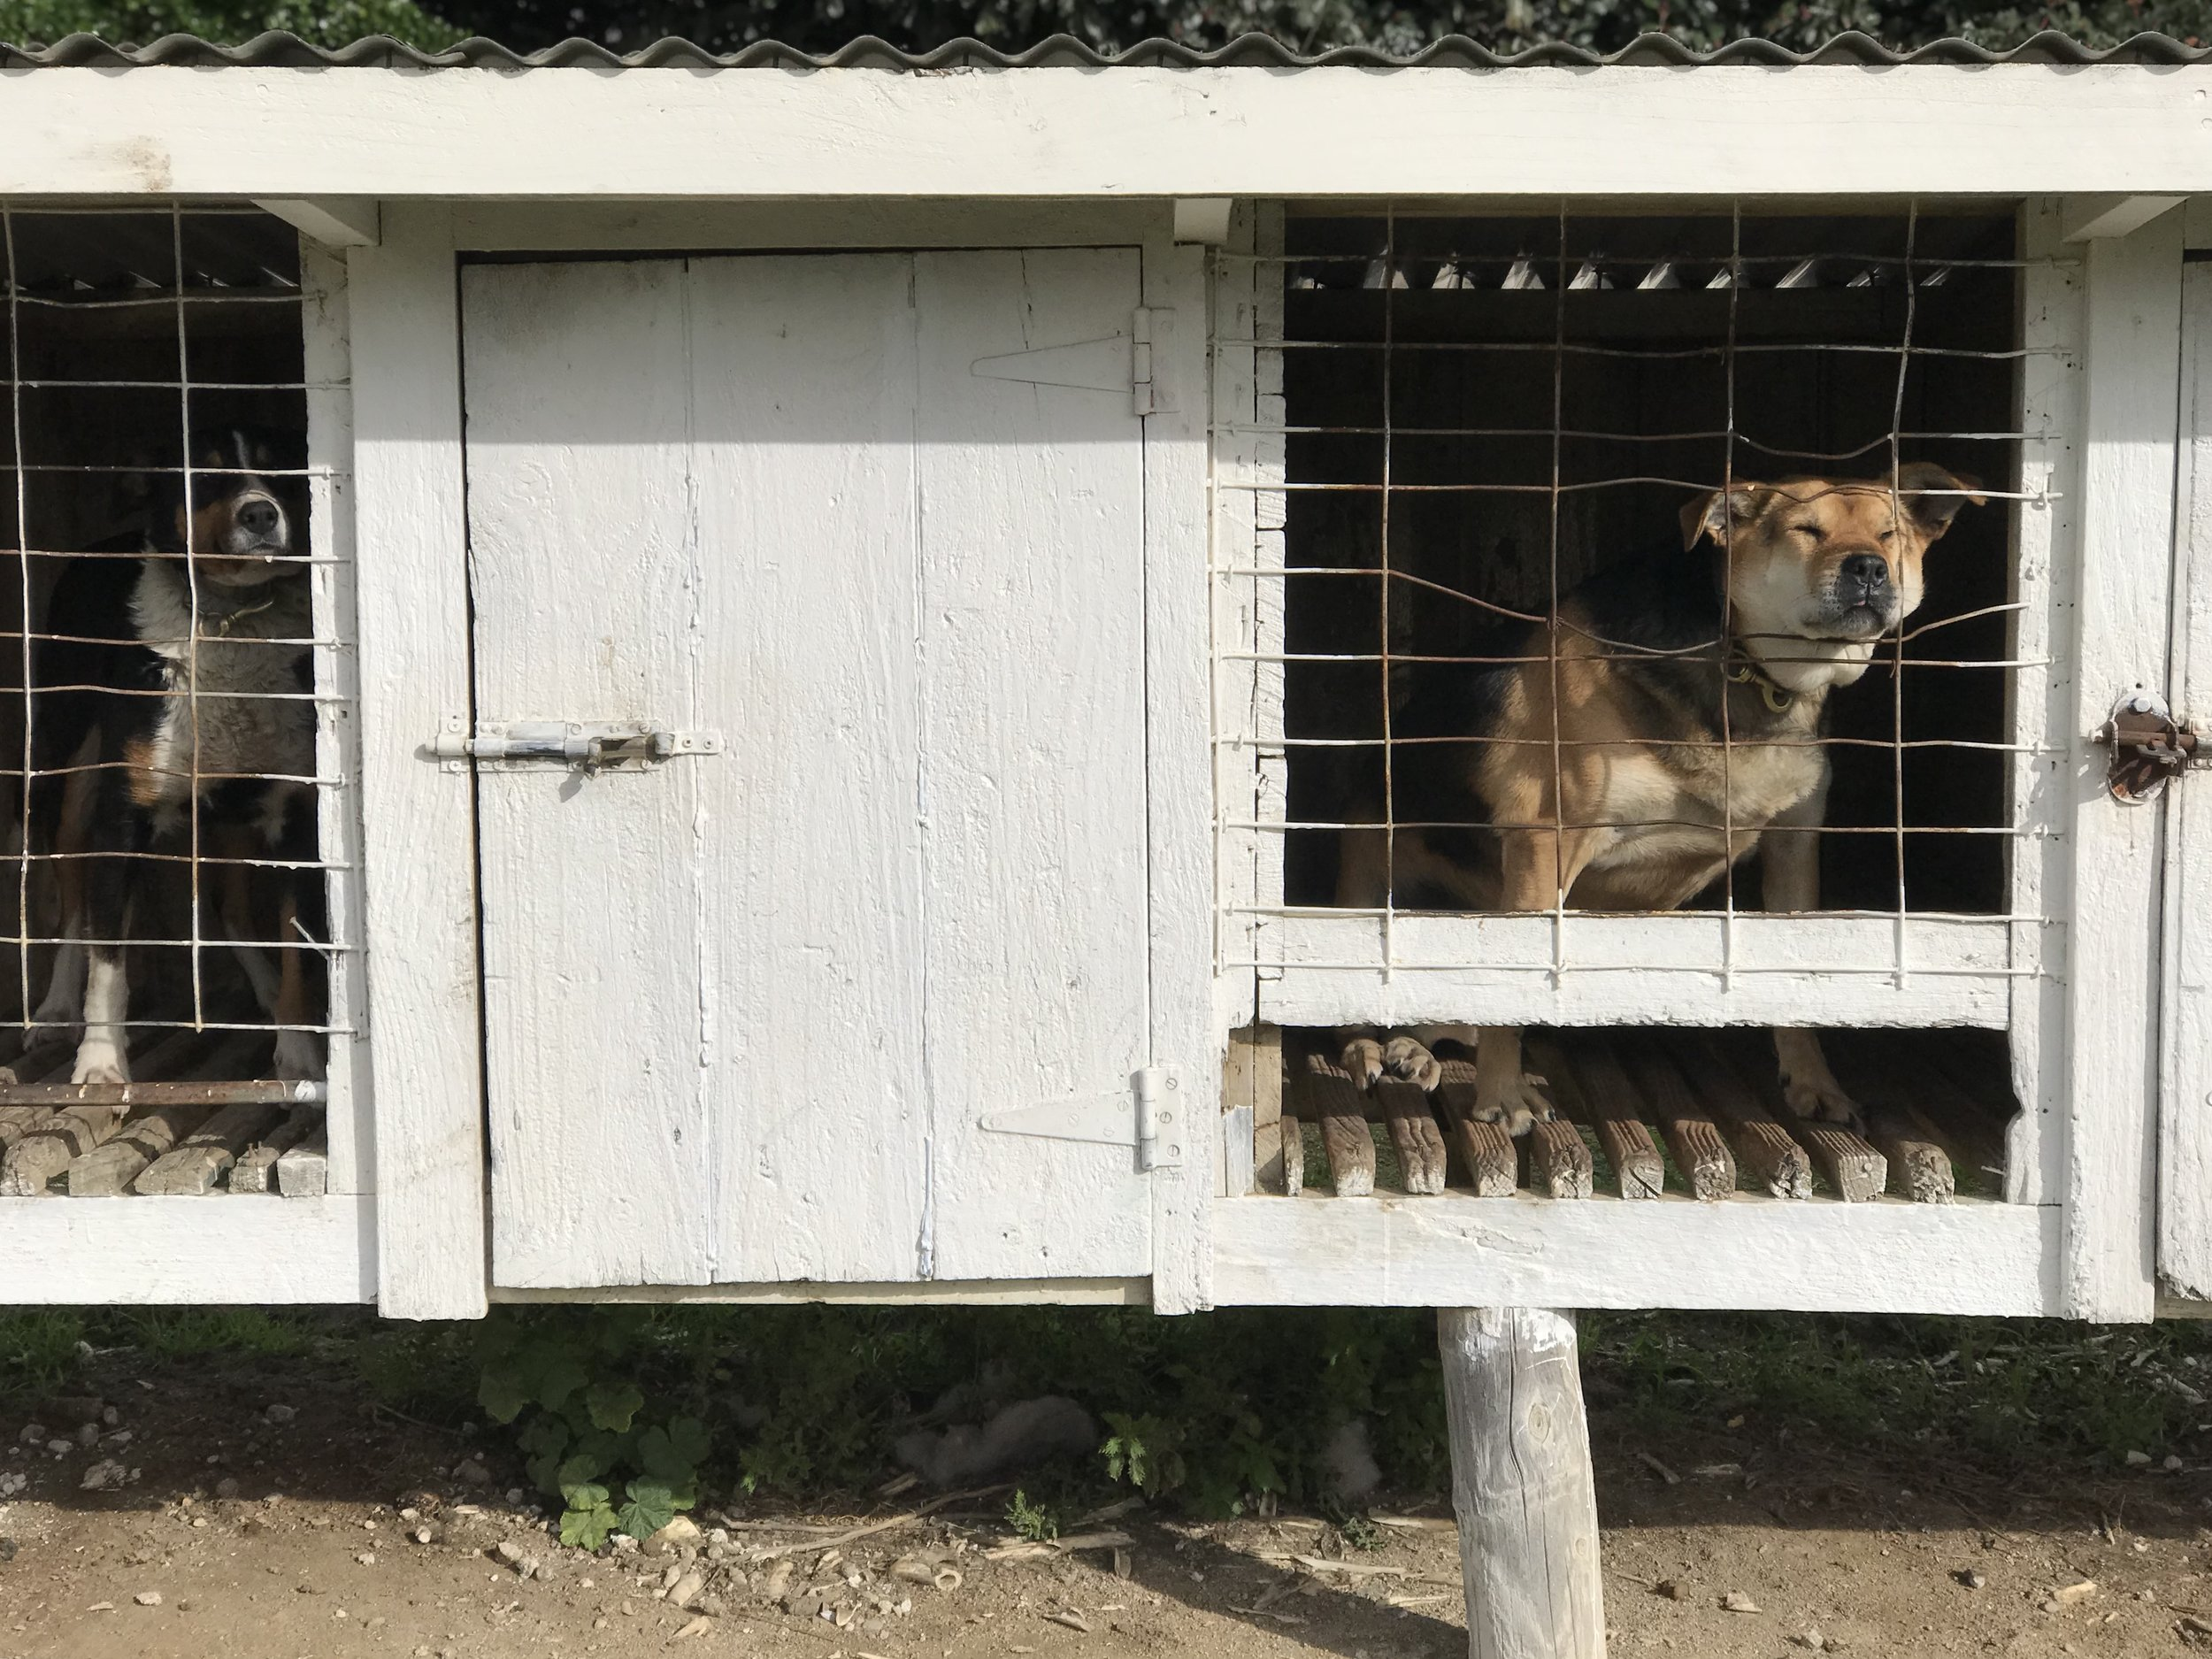 Orui Station farm dogs (image by Jacqui Gibson).